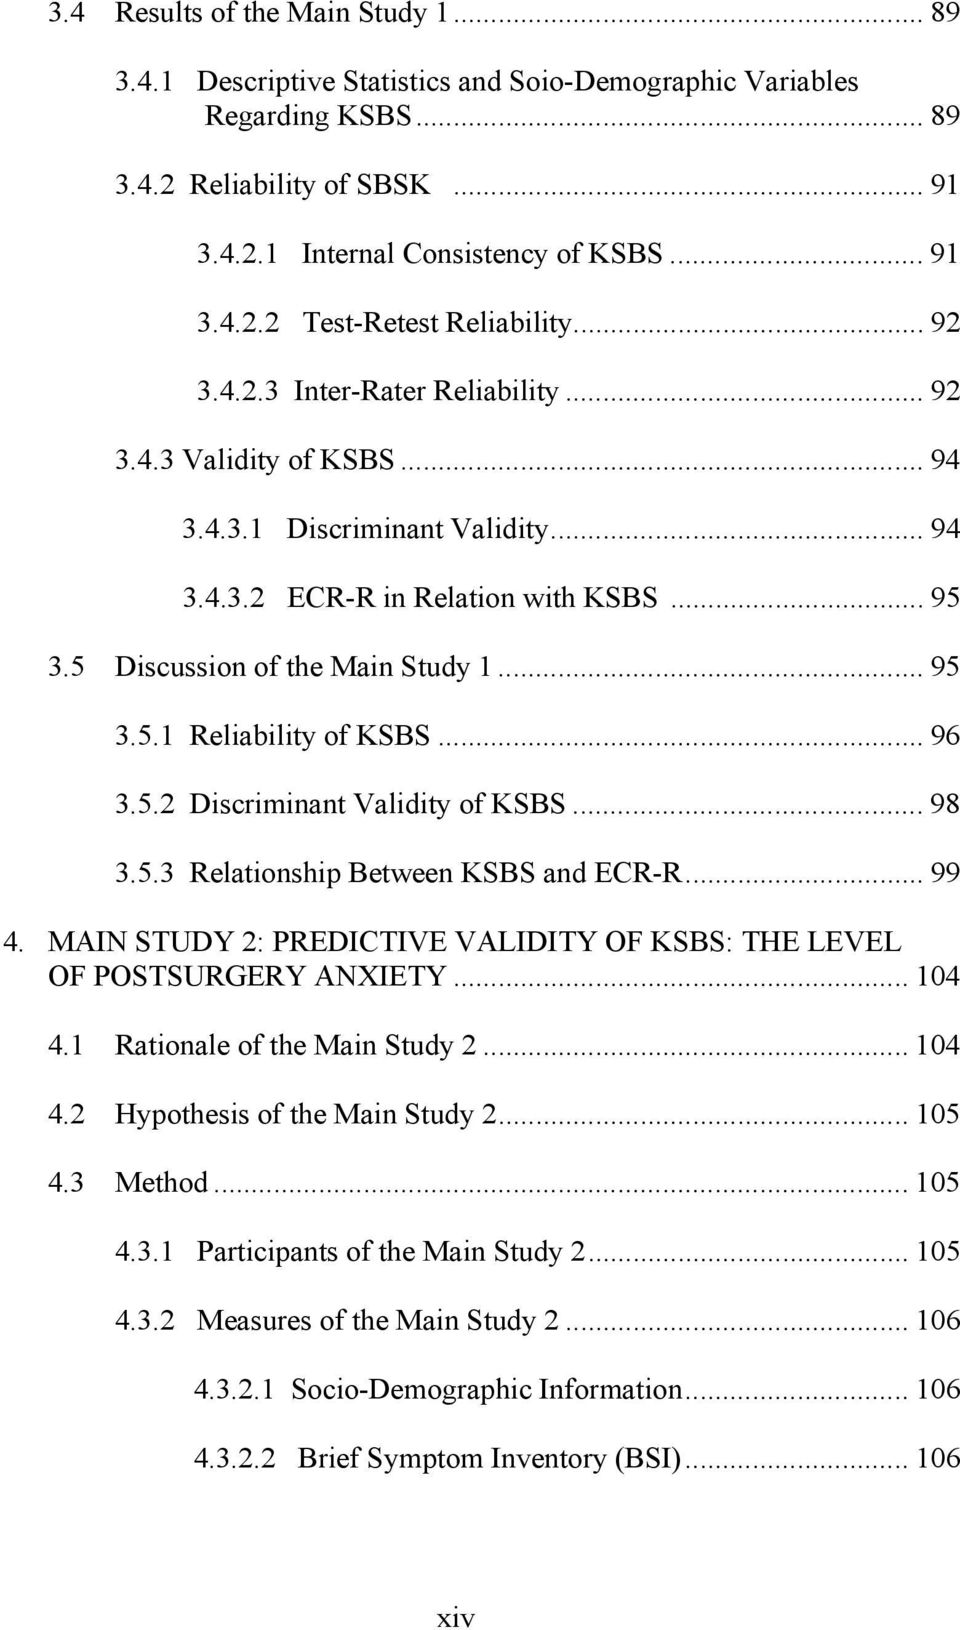 .. 96 3.5.2 Discriminant Validity of KSBS... 98 3.5.3 Relationship Between KSBS and ECR-R... 99 4. MAIN STUDY 2: PREDICTIVE VALIDITY OF KSBS: THE LEVEL OF POSTSURGERY ANXIETY... 104 4.